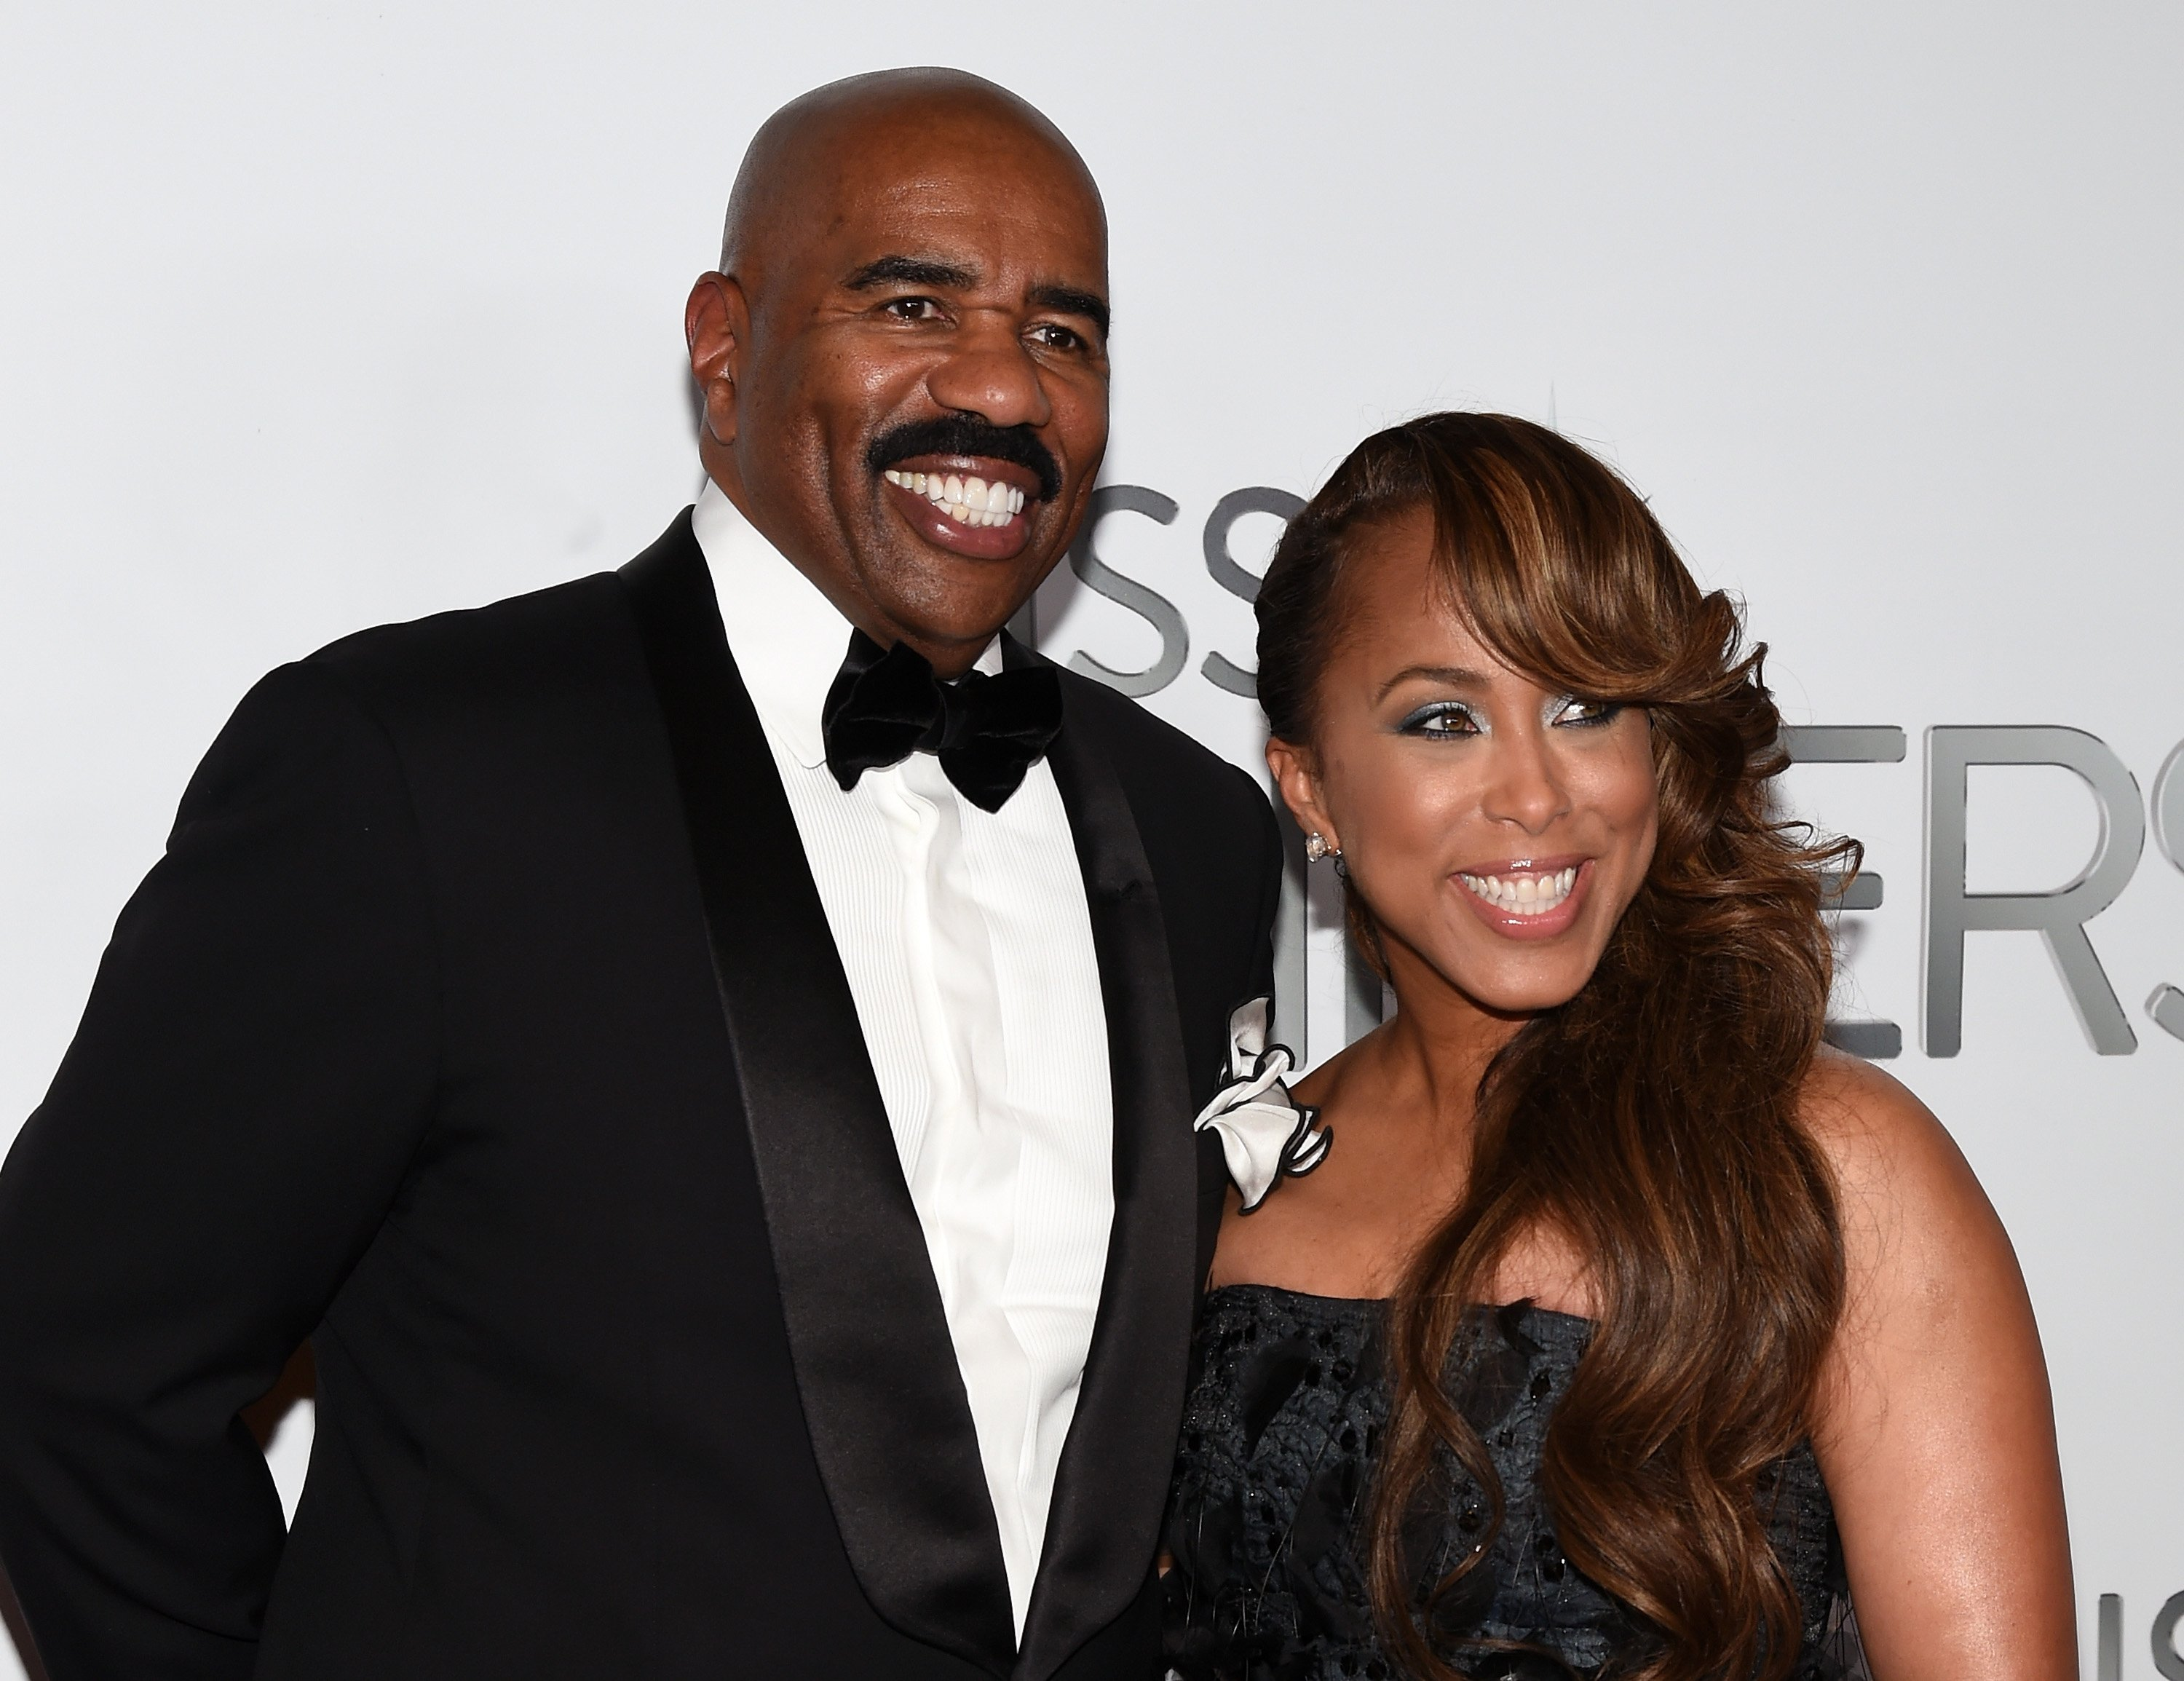 Steve and Marjorie Harvey at the 2015 Miss Universe Pageant. 20 December 2015 | Photo: Getty Images